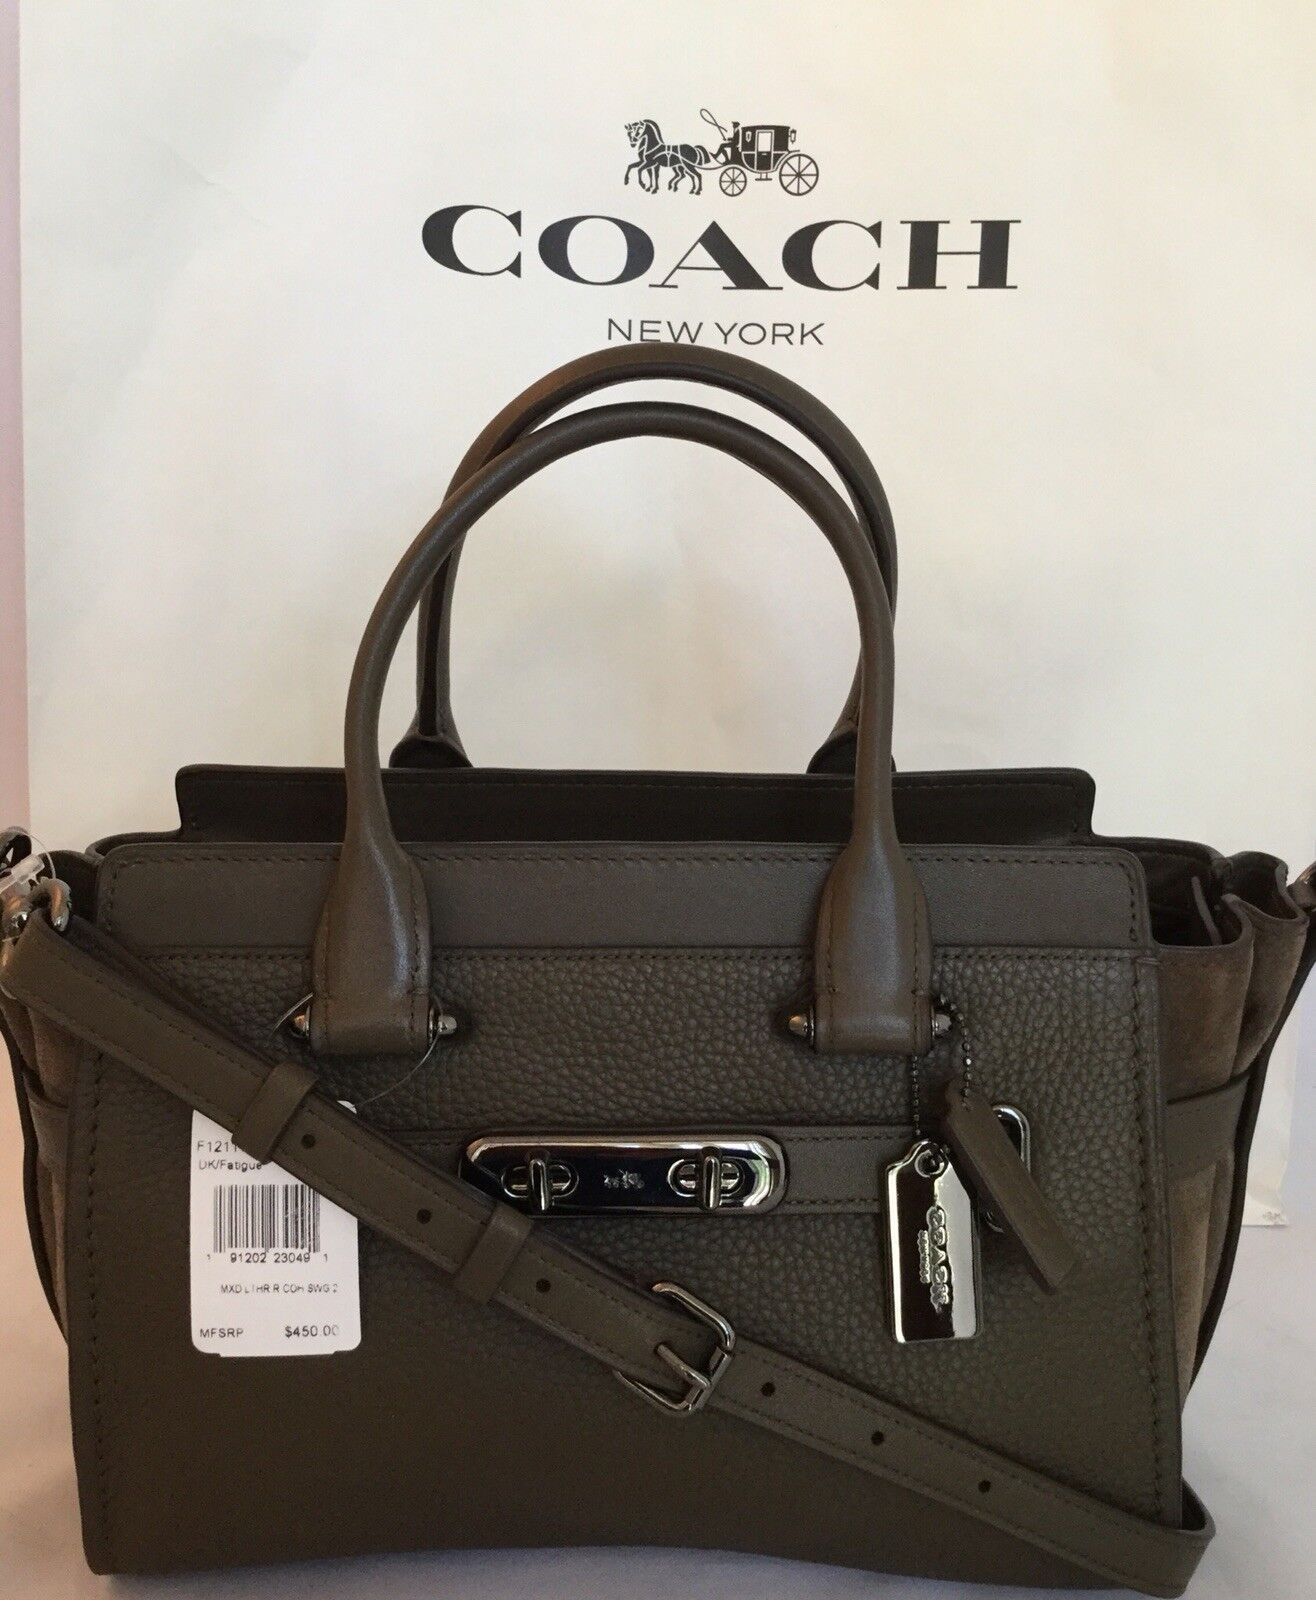 17ae7f1ec0d2 Coach 12117 Swagger 27 Mixed Leather Dk fatigue Handbag Satchel ...